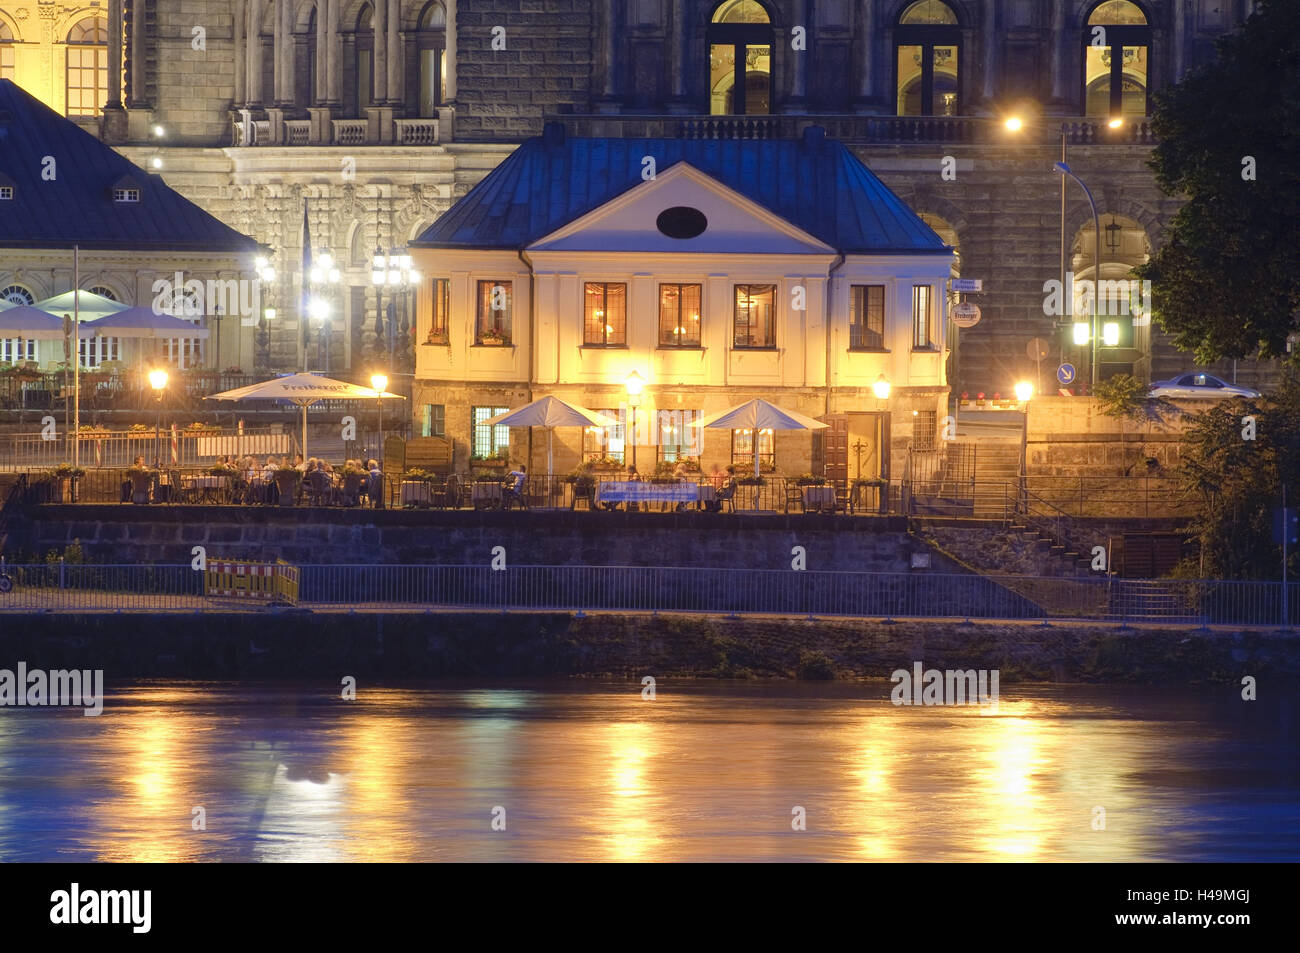 Bastion small castles, dusk, Dresden, Saxon, Germany, - Stock Image